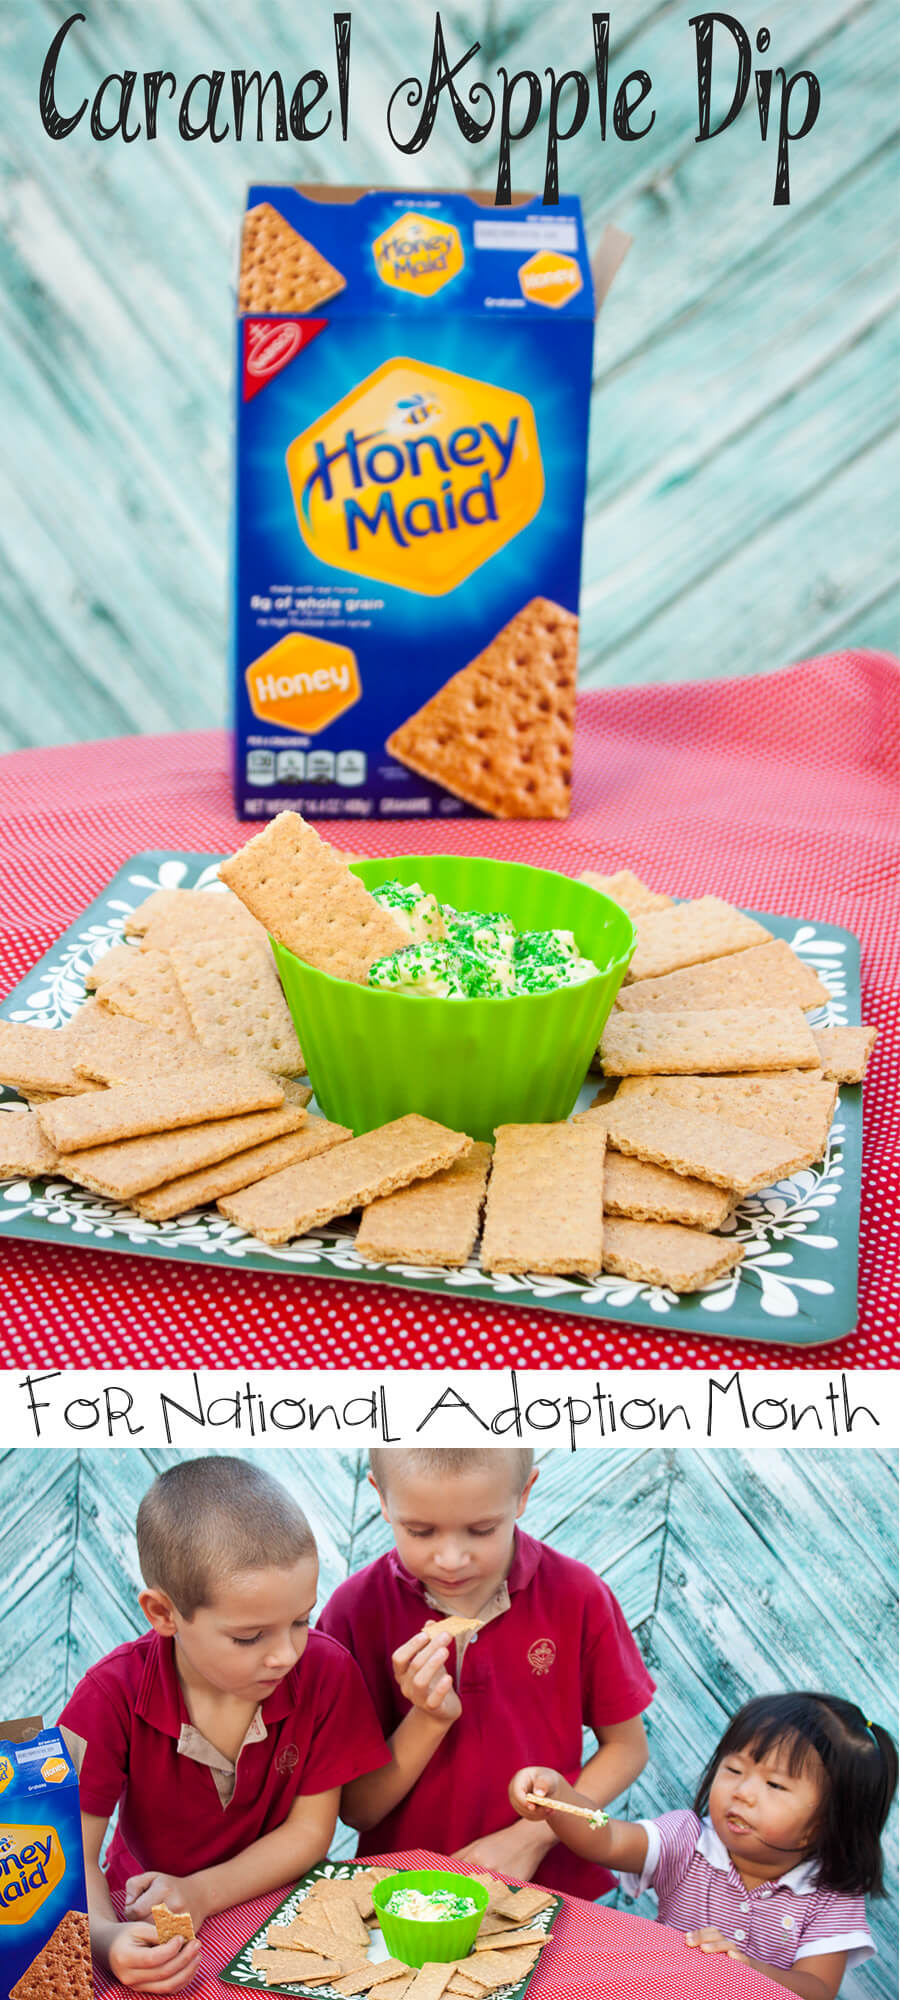 Caramel Apple Dip with Honey Maid for National Adoption Month #ThisisWholesome #CG